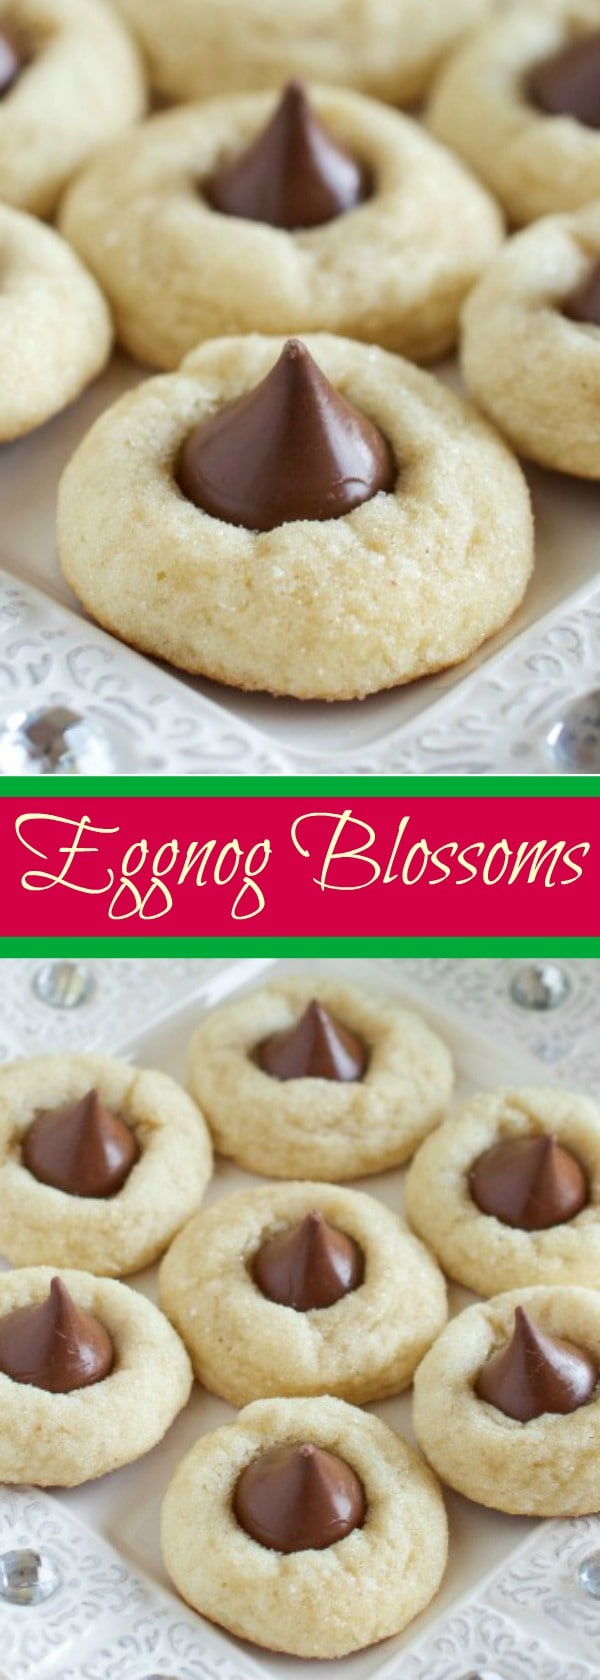 Eggnog Blossoms - Soft and Chewy Eggnog Cookies with a Hershey Kiss in the Center!